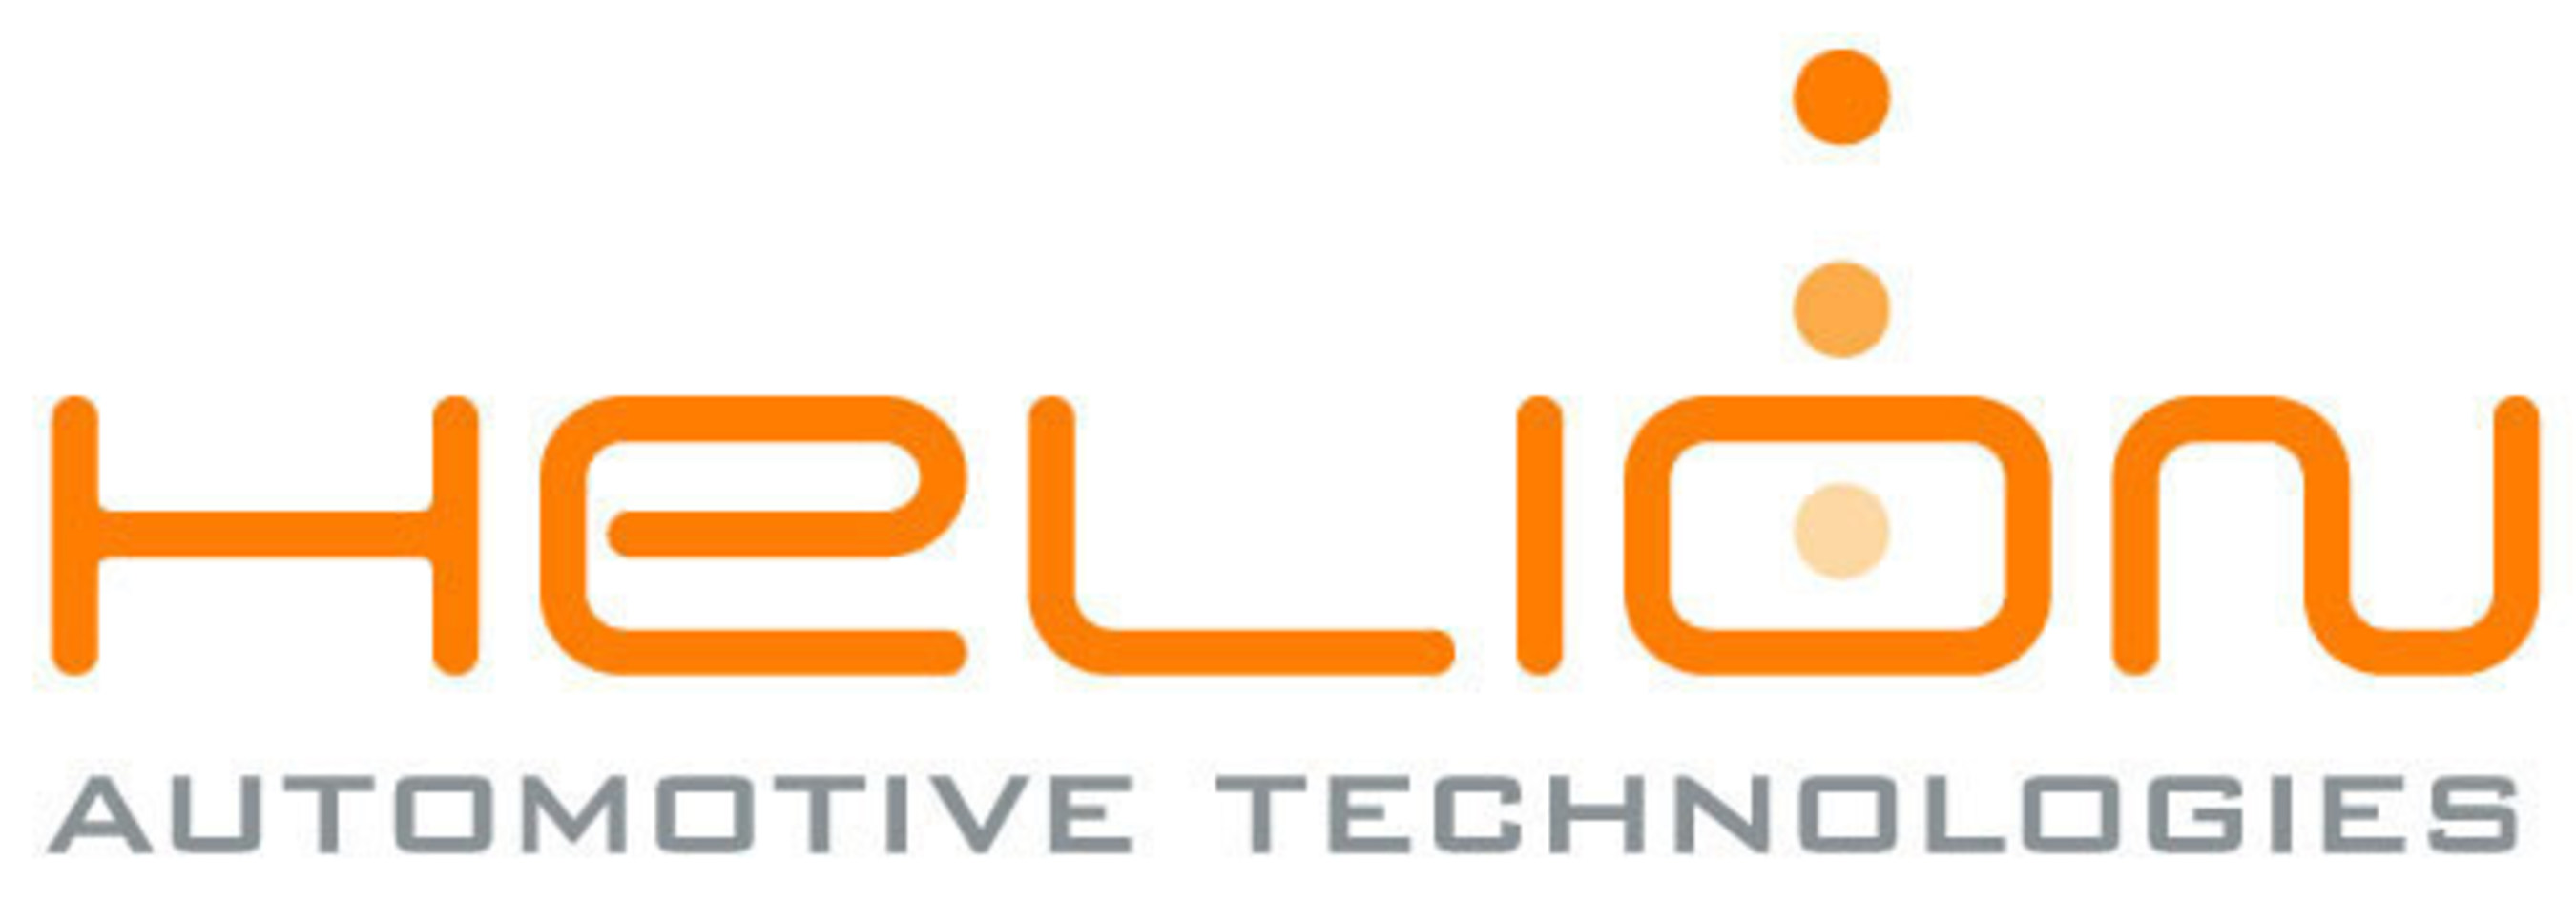 Helion Automotive Technologies New Cyber Security Solution Protects Auto Dealers from Growing Threat of Hackers and Cyber Attacks